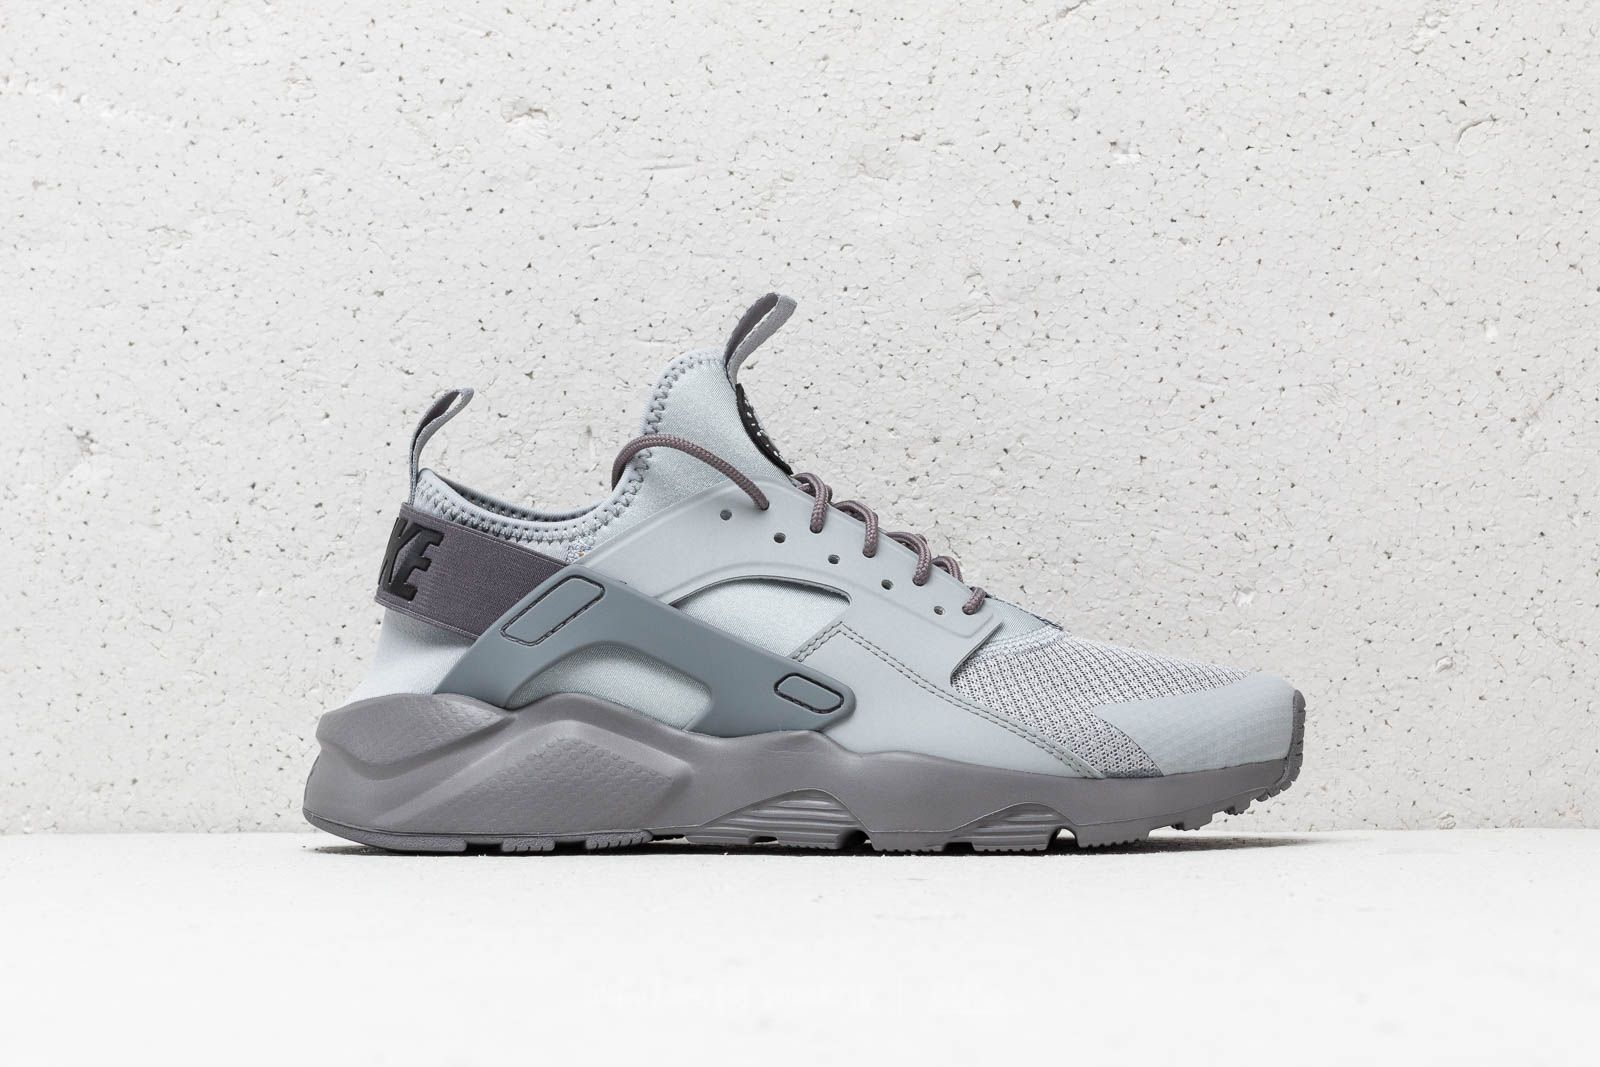 promo code a2169 53523 Nike Air Huarache Run Ultra Gunsmoke Black-Wolf Grey at a great price 128